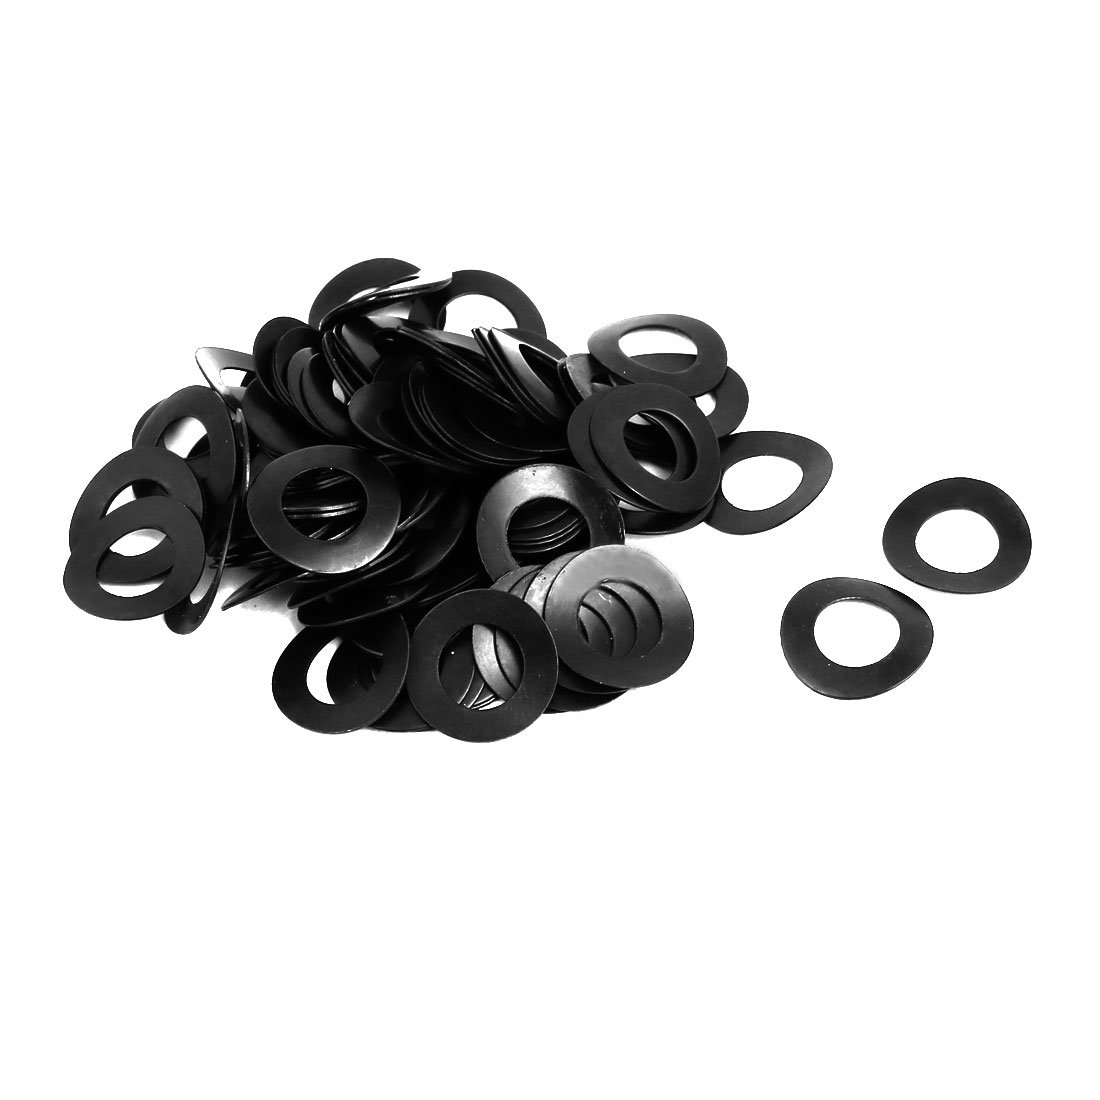 uxcell 8mm Fitting Dia Carbon Steel Compressed Type Curved Spring Washer 100pcs